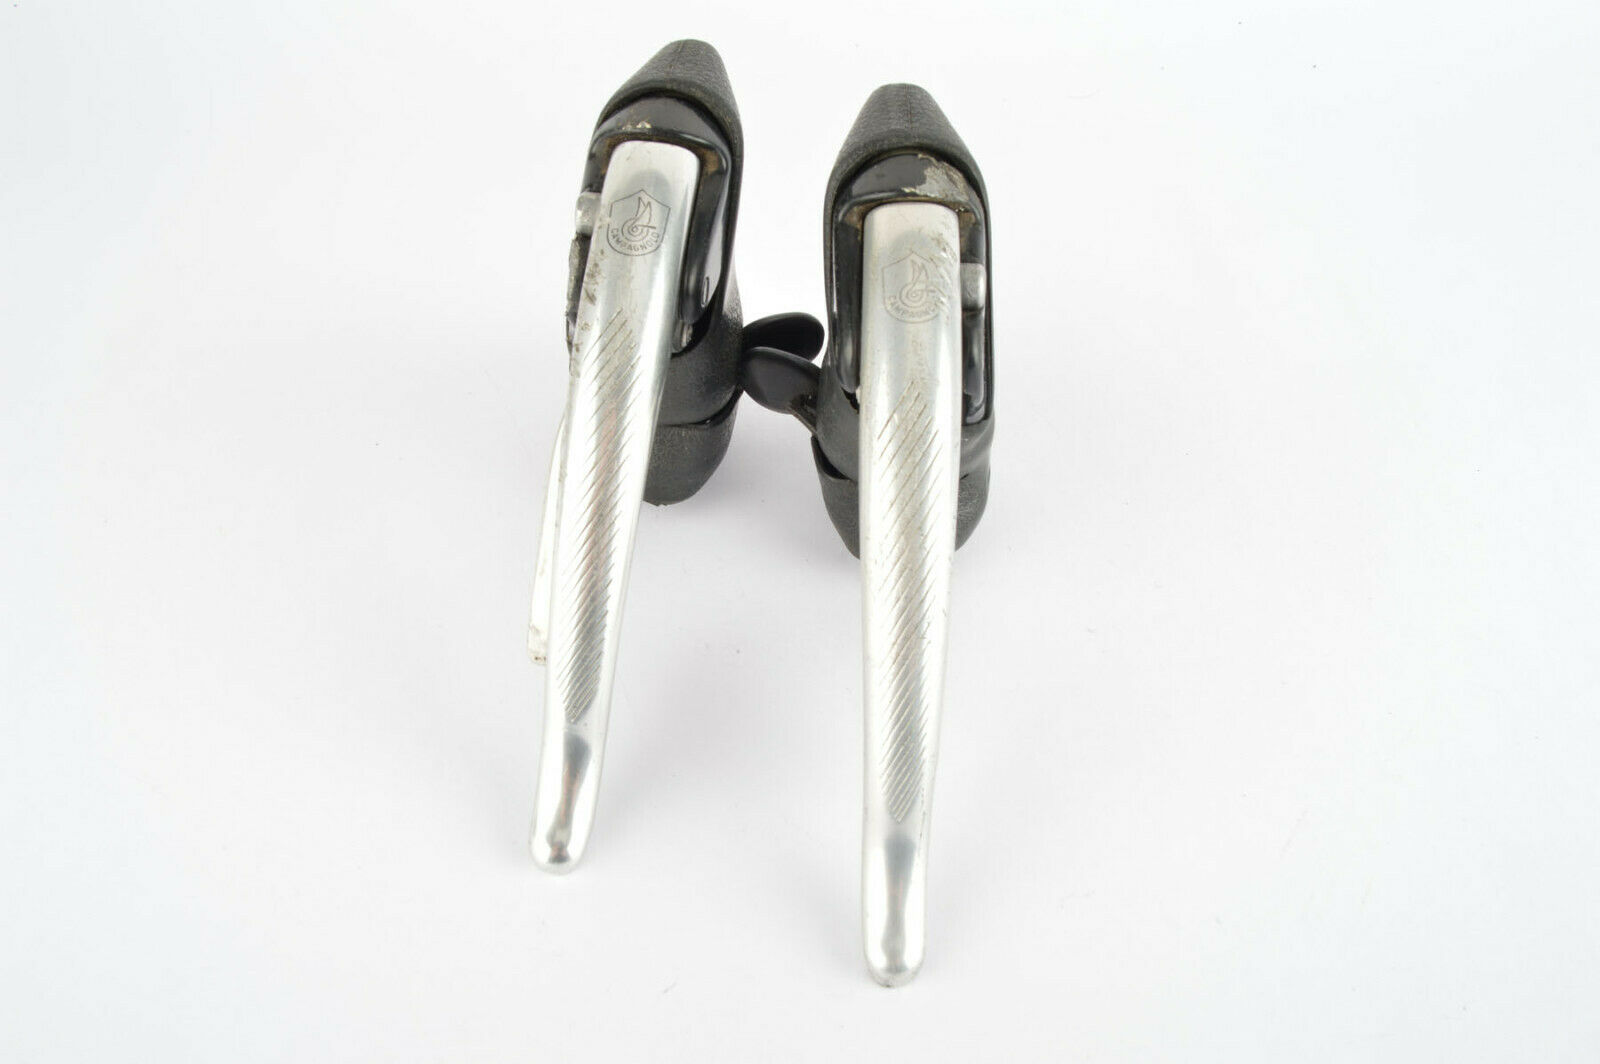 Campagnolo Record  EC-12RE CG 8 speed Ergopower Shifting Brake Levers